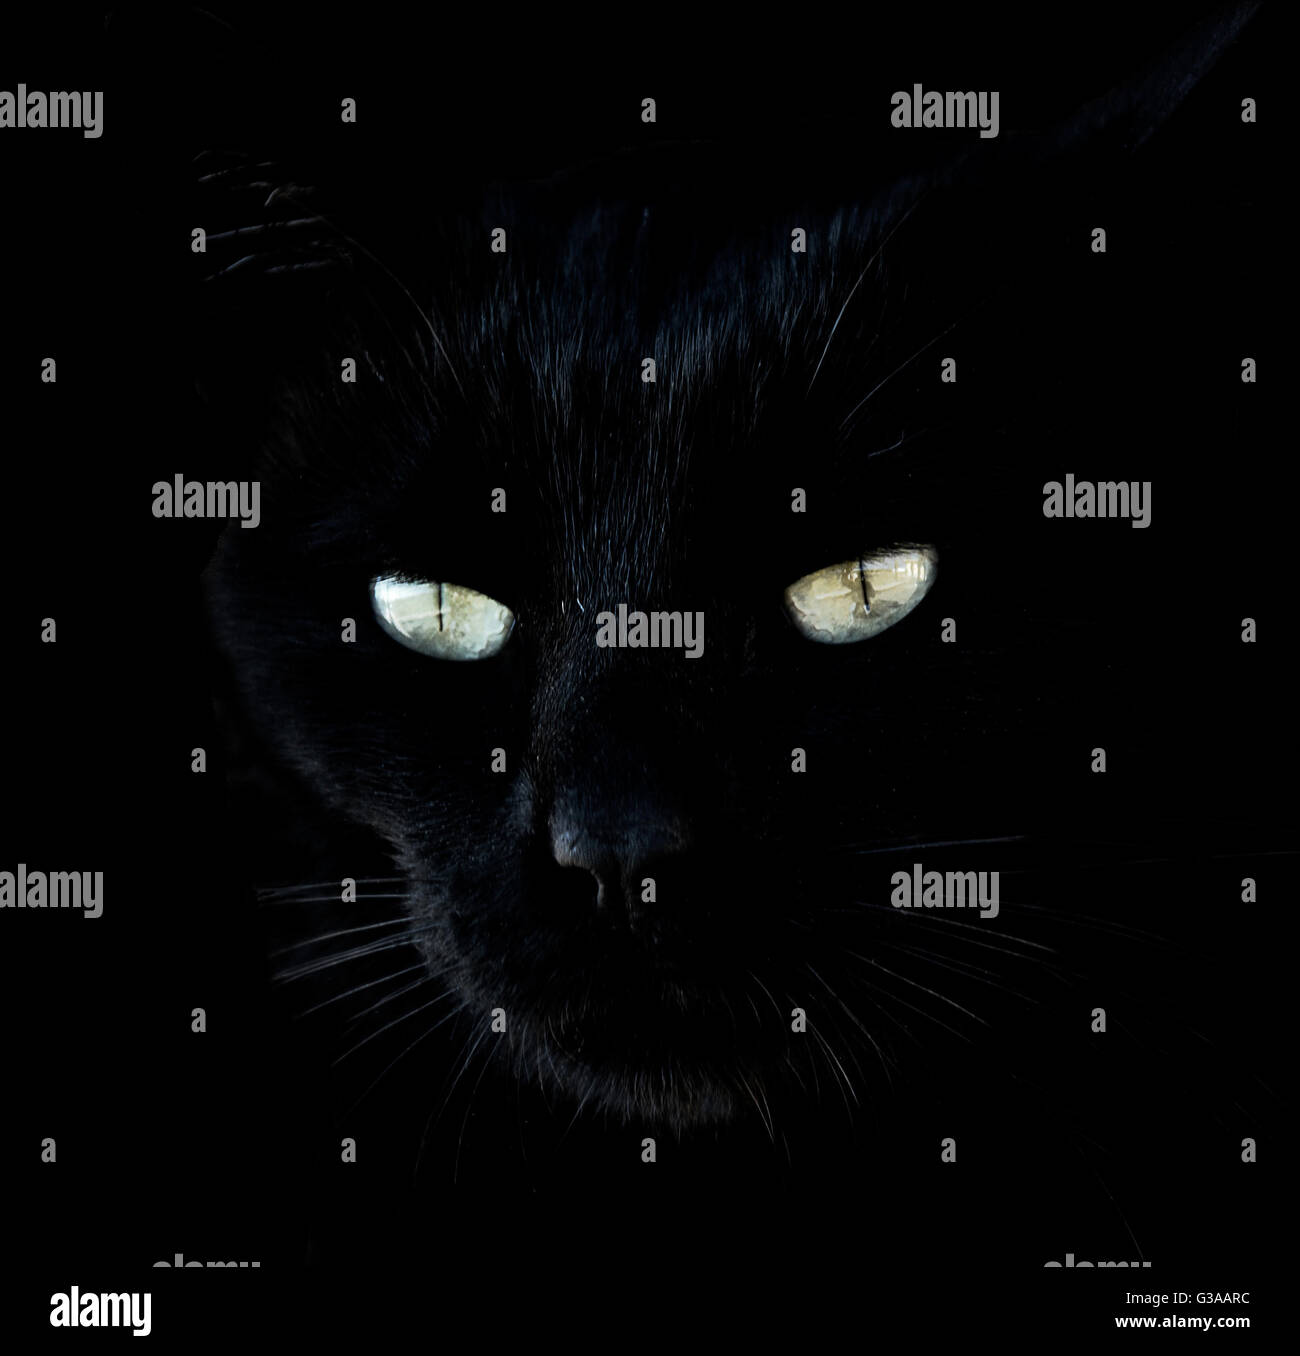 close-up-portrait-of-black-cat-with-glow